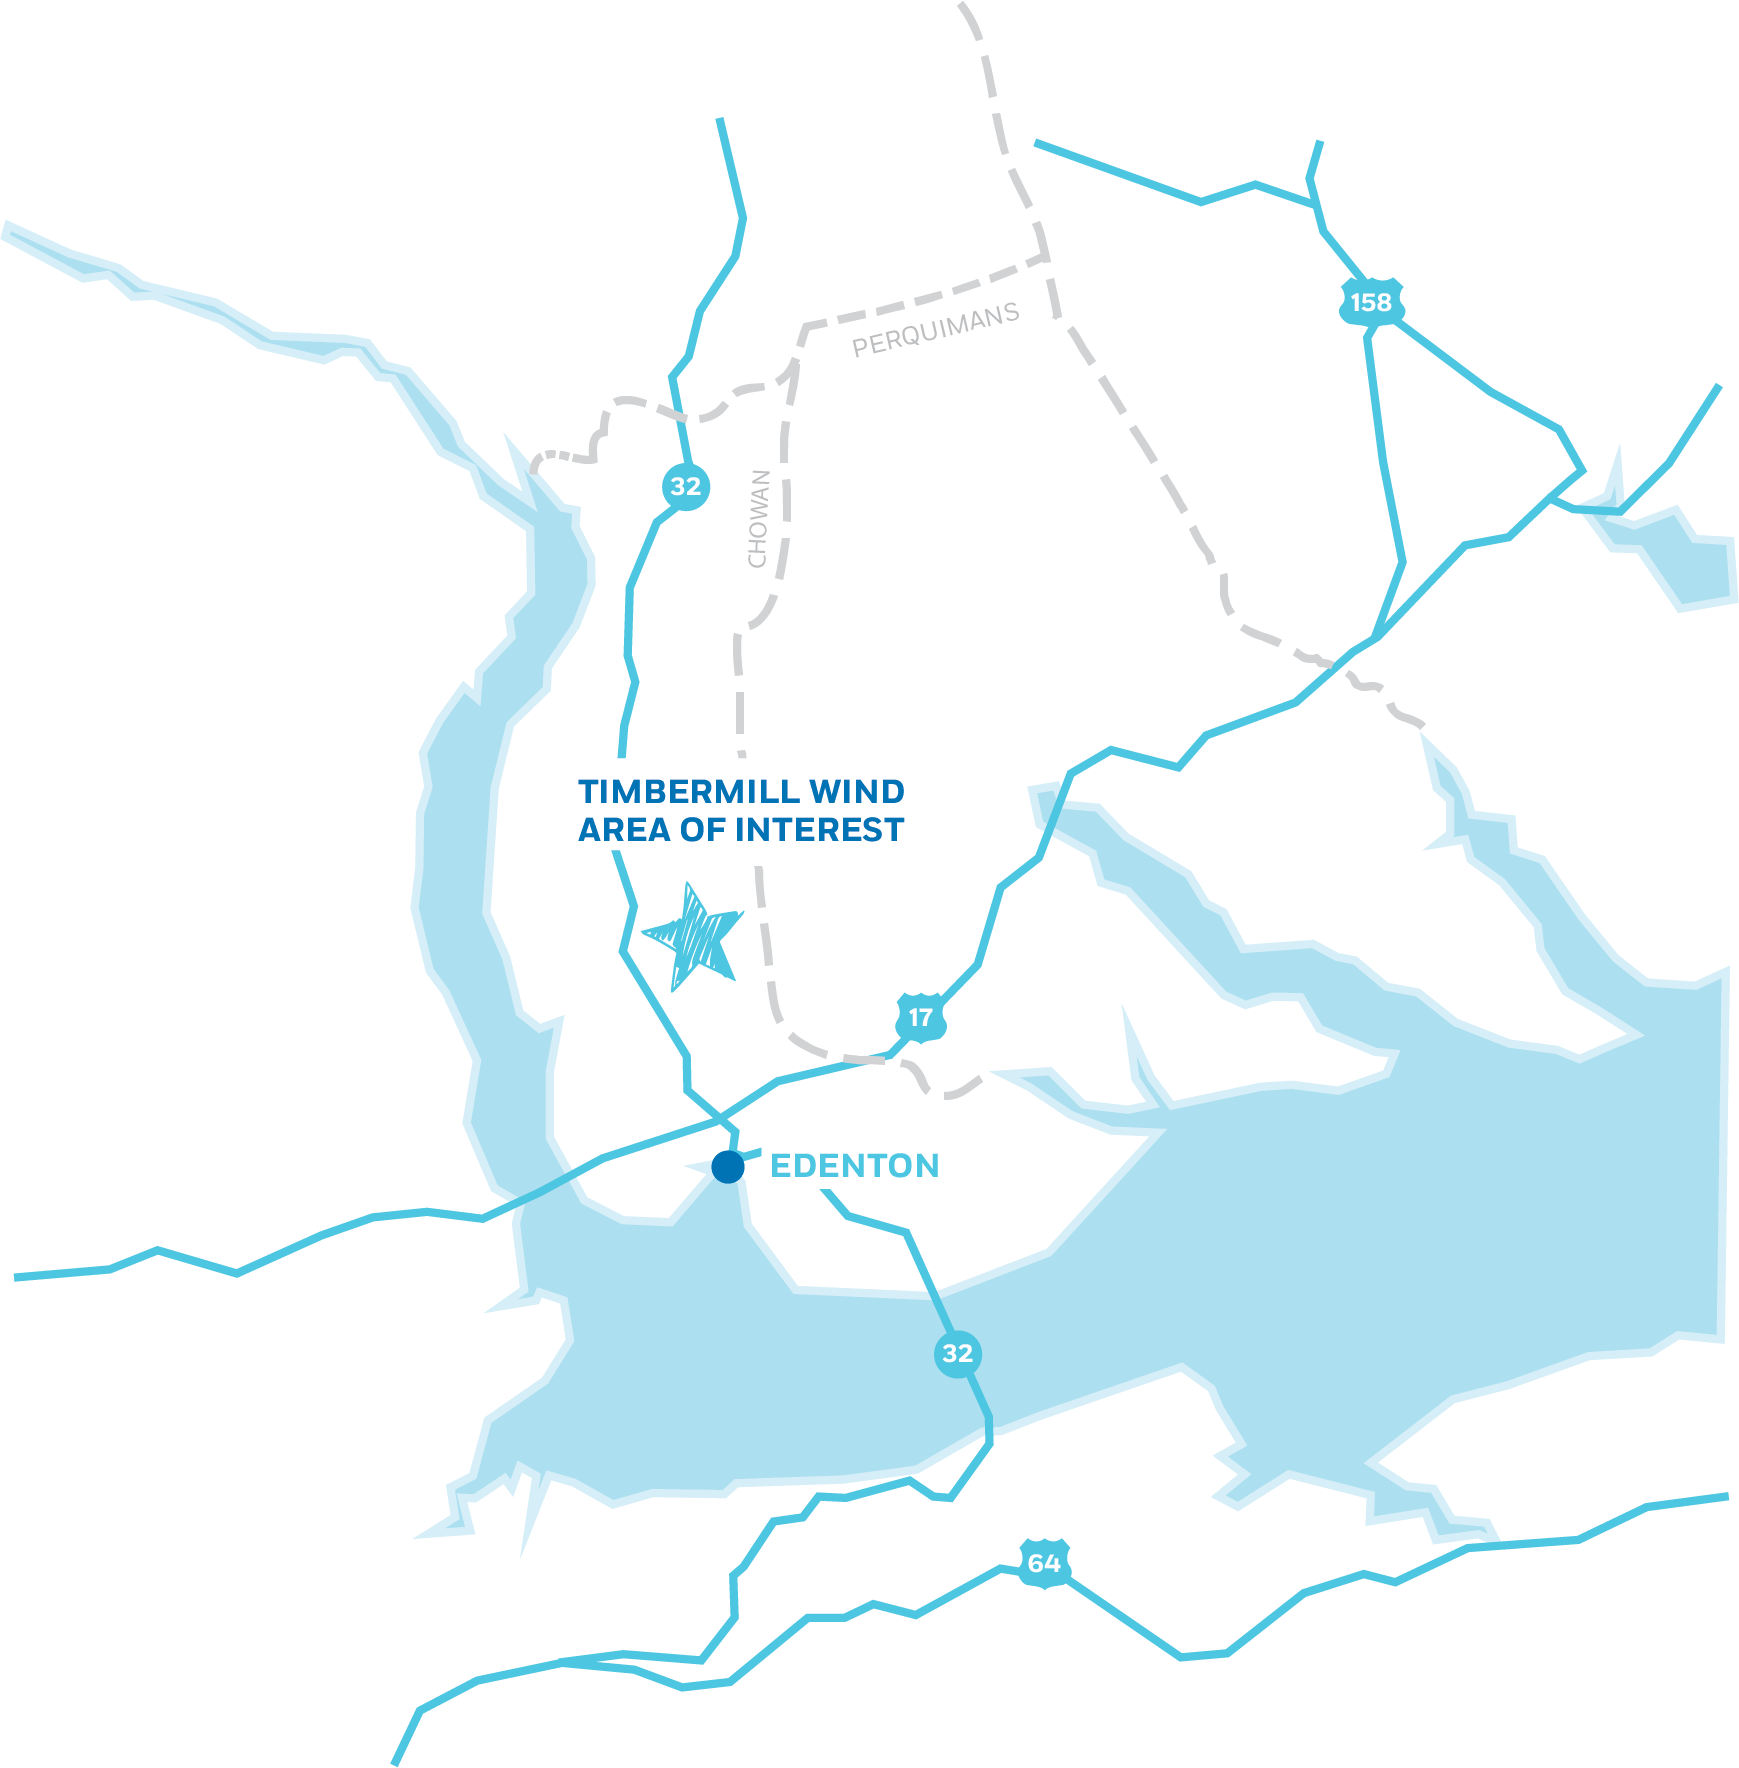 timbermill_map5_chowan2.png